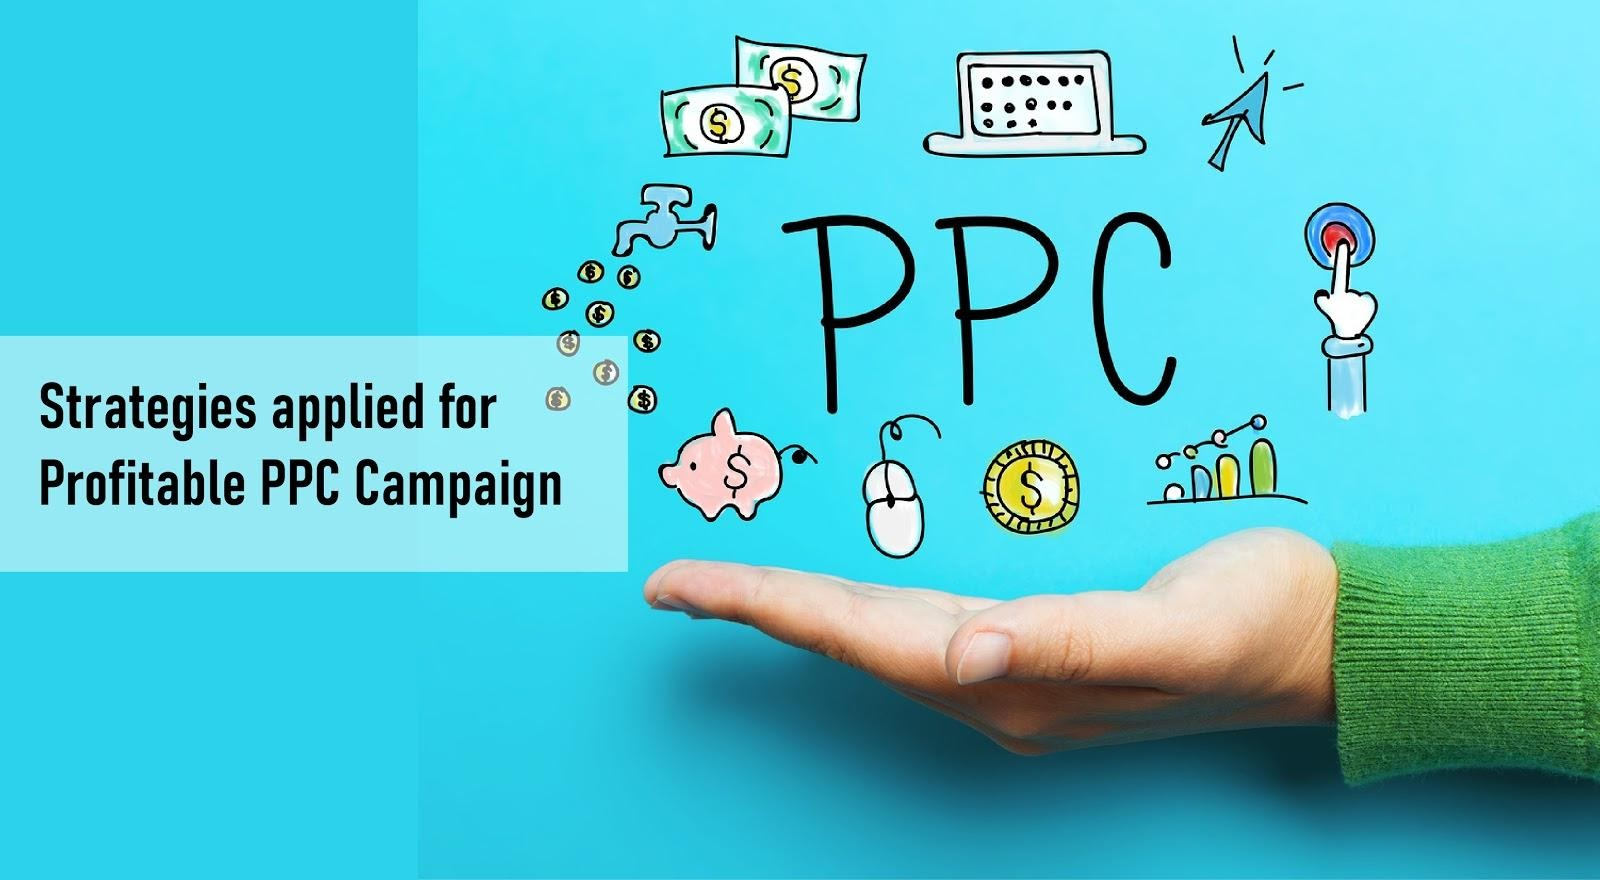 What Strategies Applied for a Profitable PPC Campaign?